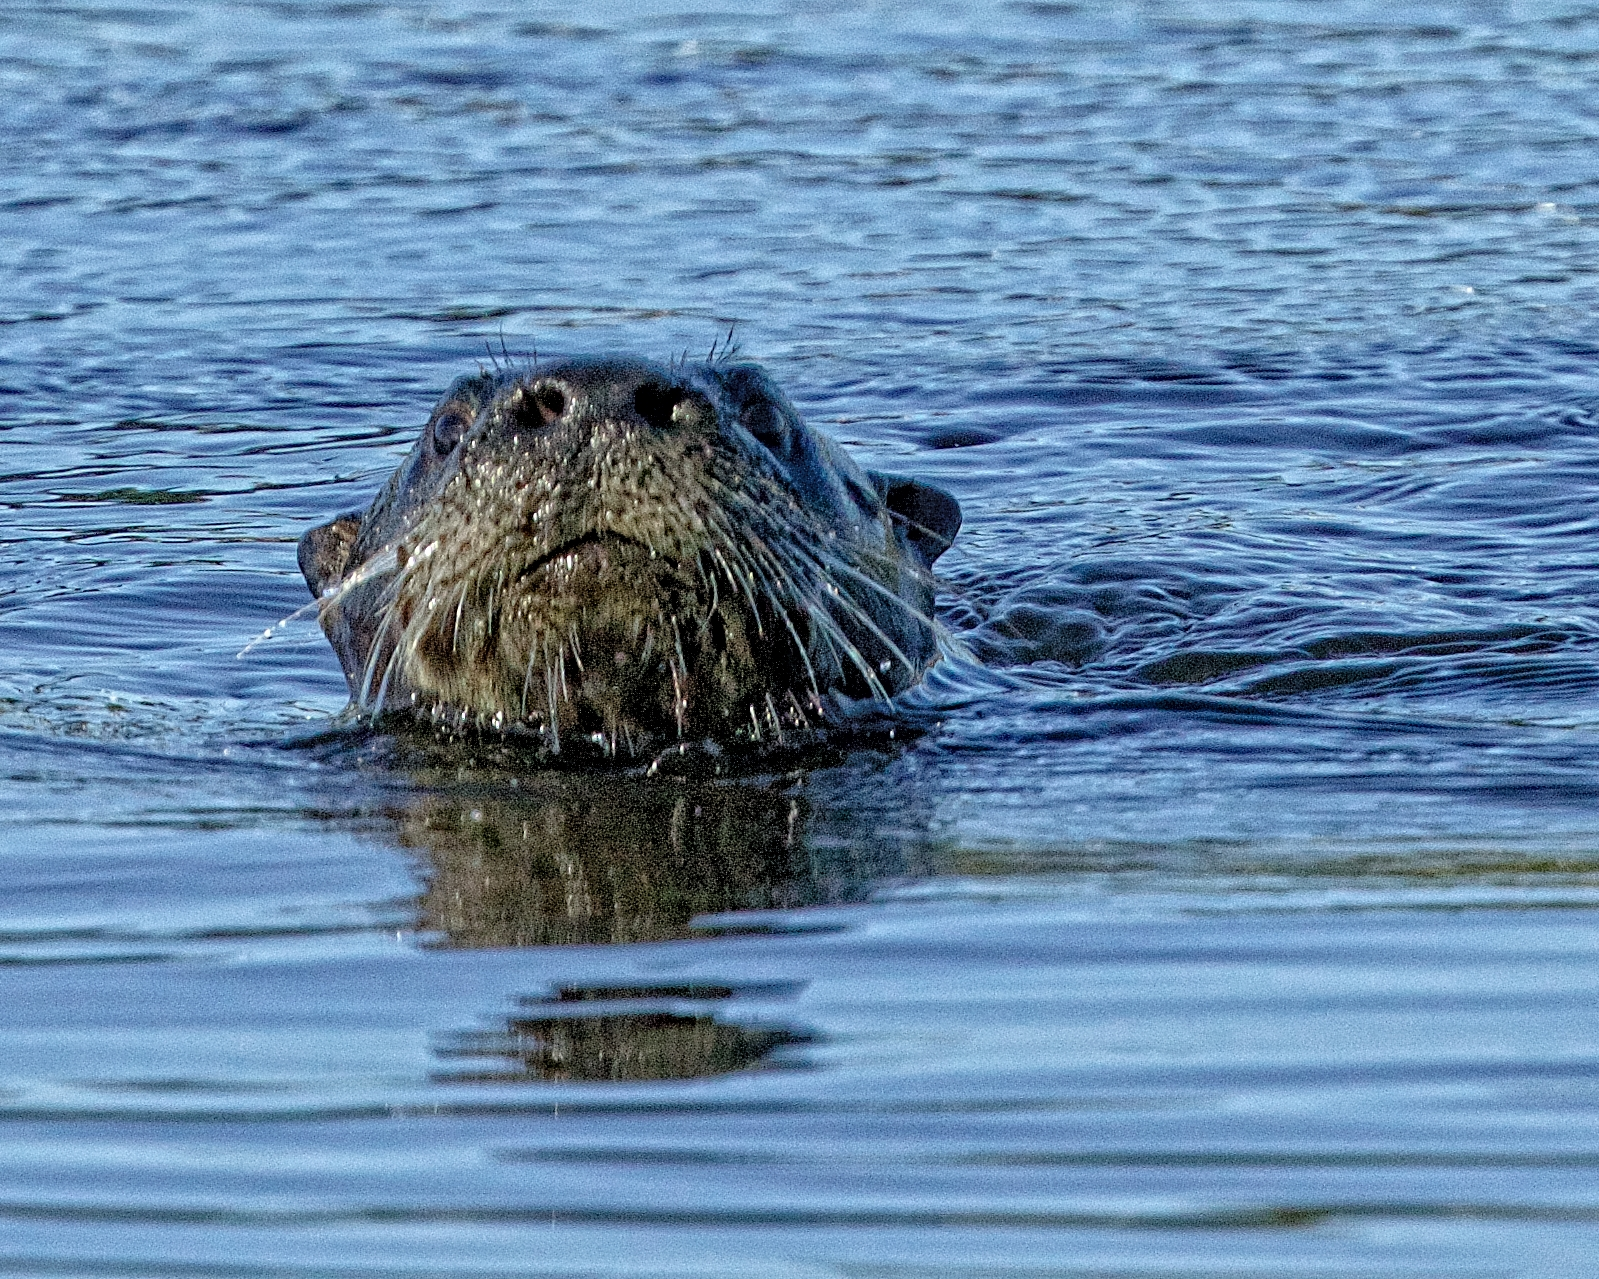 A River Otter pops up and gives me a wet whiskered grin..